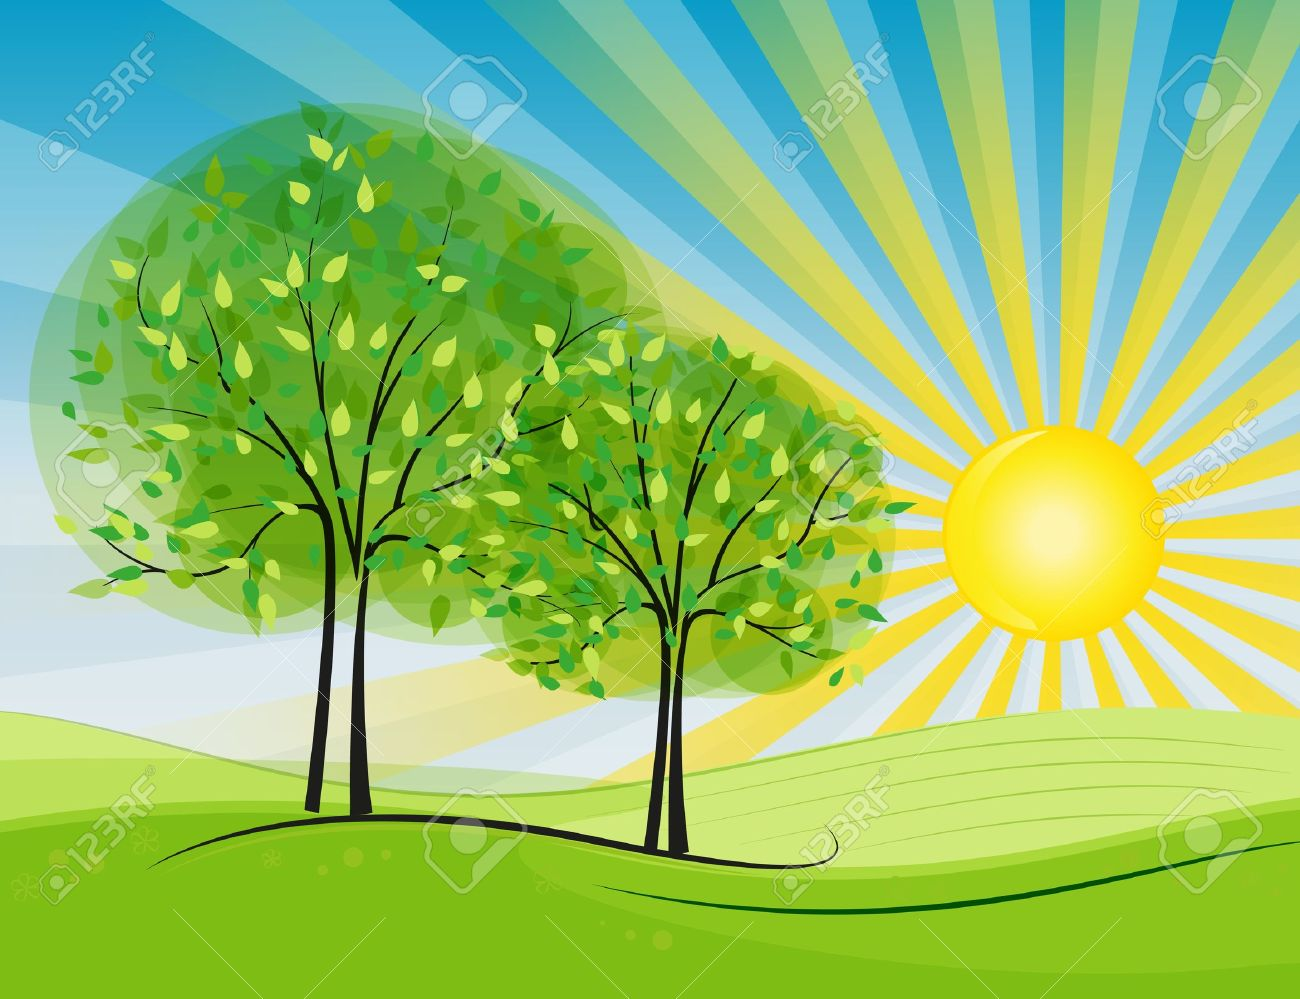 Sunny Day Clipart Group with 69+ items.